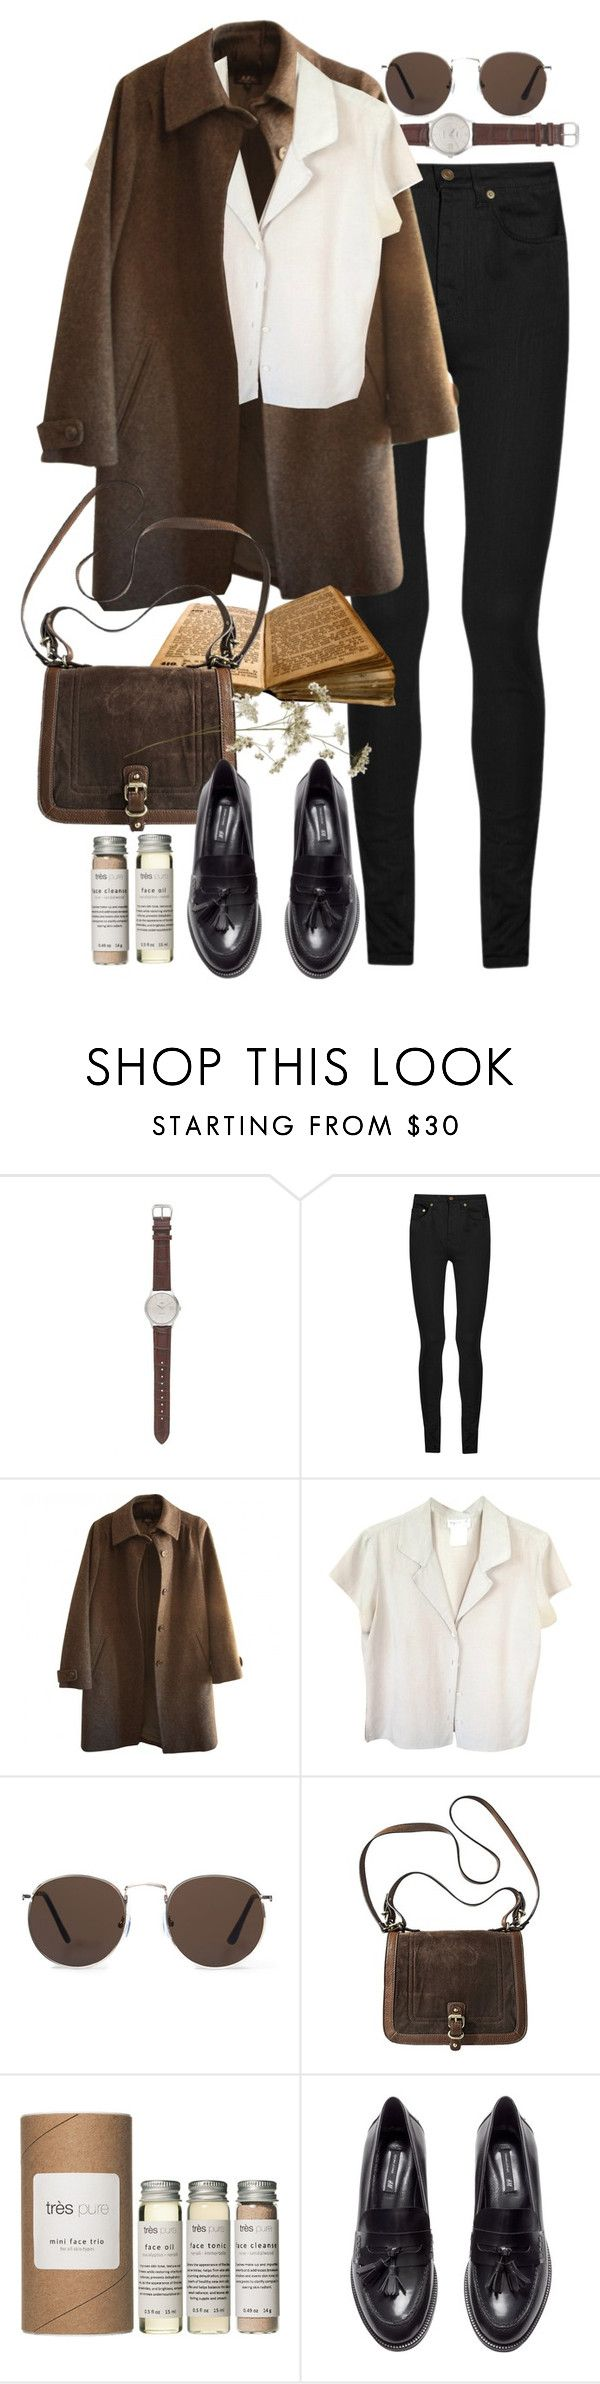 """Untitled #8807"" by nikka-phillips ❤ liked on Polyvore featuring J.Crew, Yves Saint Laurent, A.P.C., agnès b., MANGO, Très Pure and H&M"